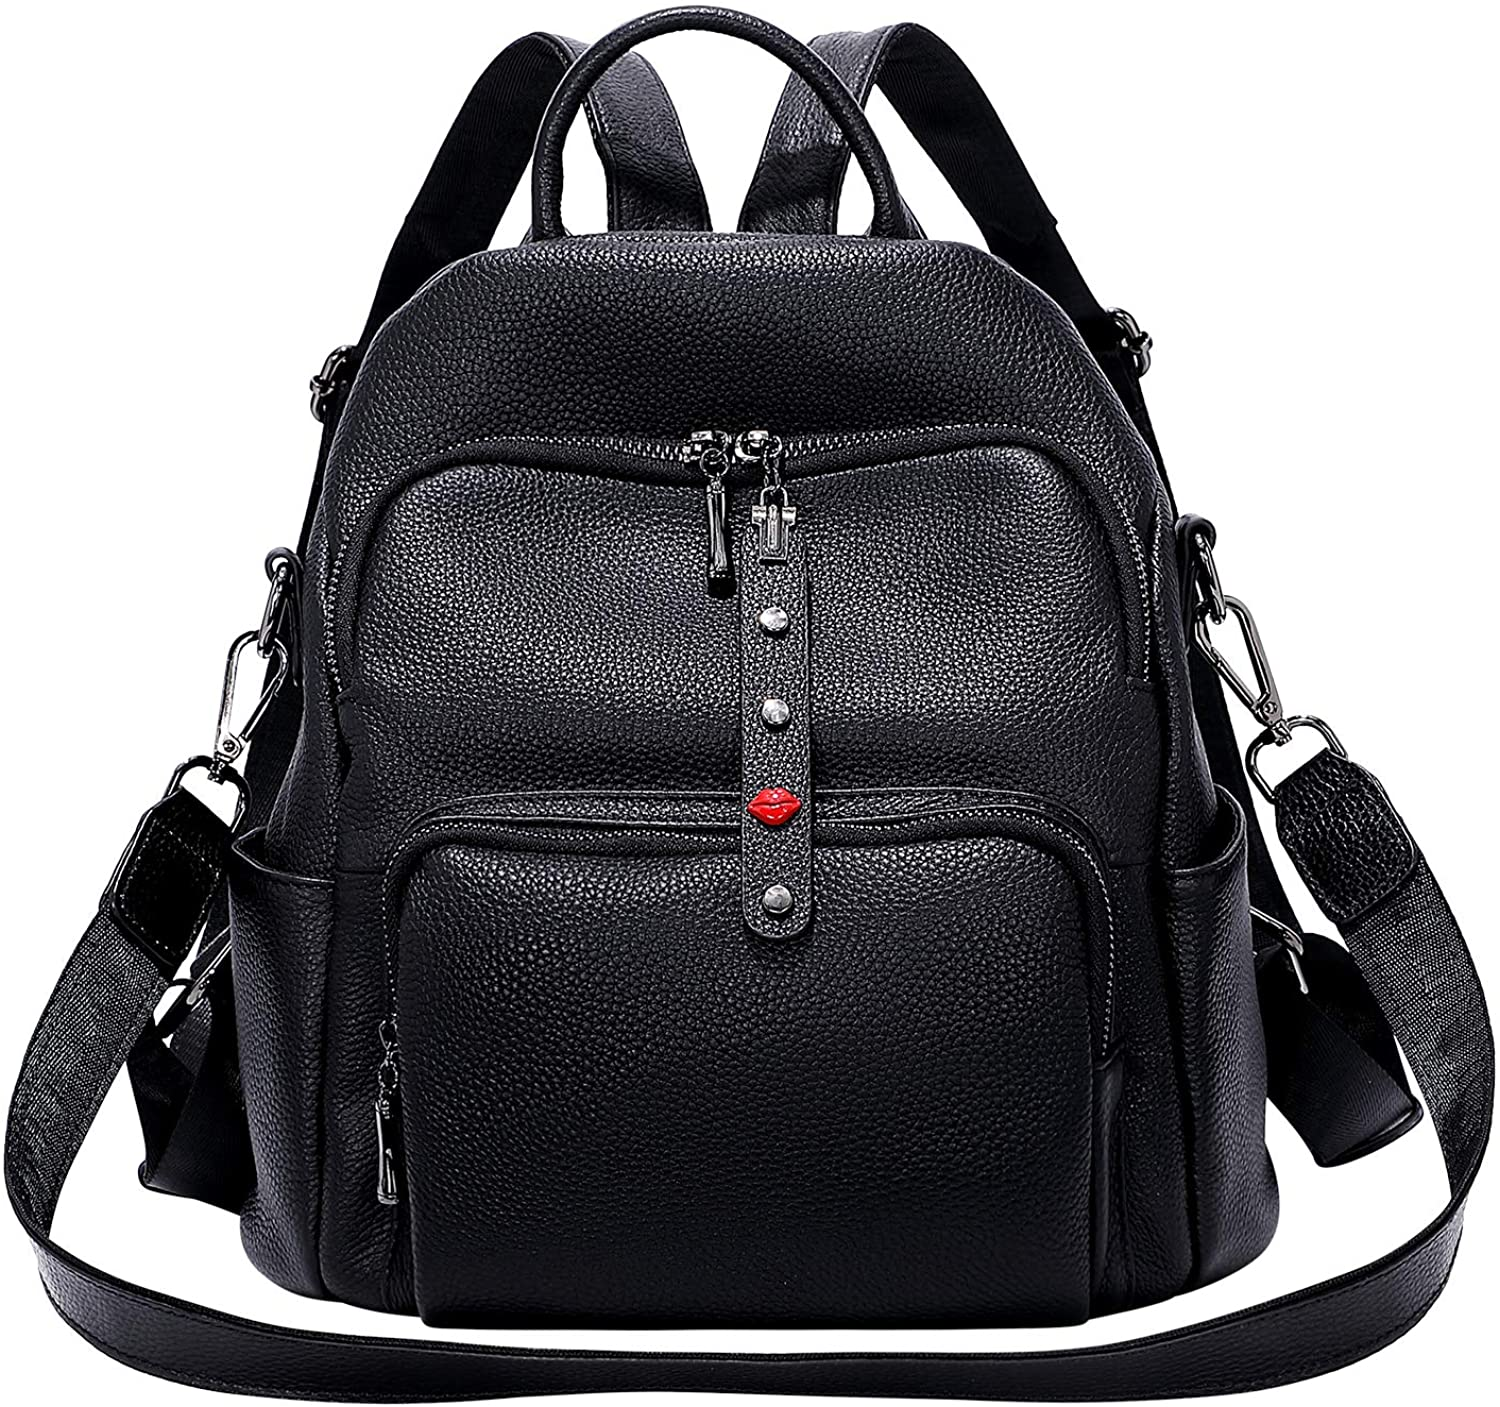 OVER EARTH Genuine Leather Backpack Purse for Women Anti theft Backpack Rucksack Purse Convertible Shoulder Bag Medium